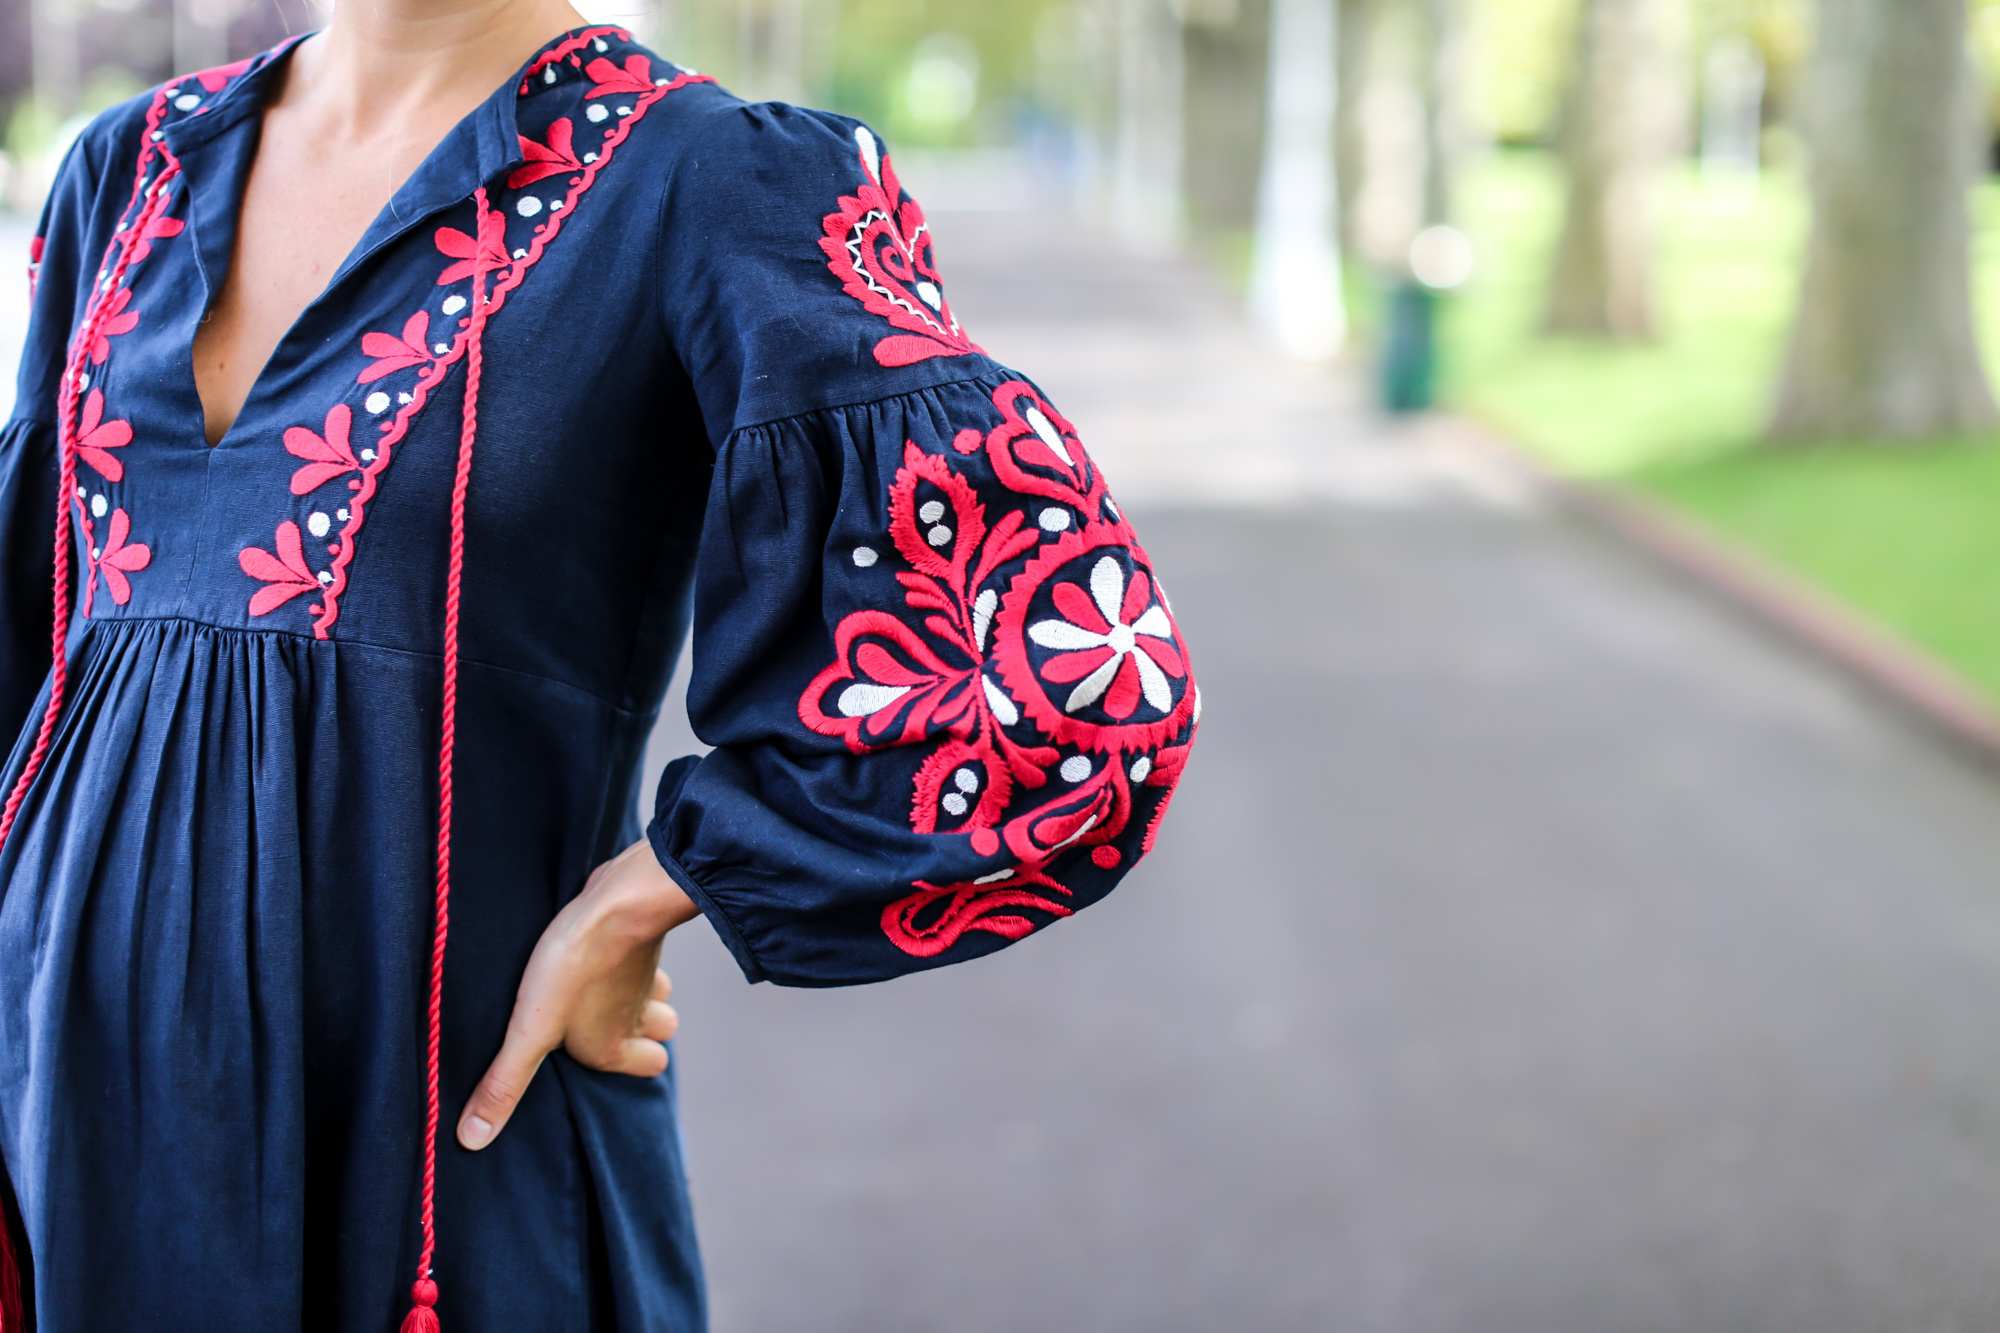 Clochet_streetstyle_fashionblogger_bilbao_zara_embroided_traditional_dress_strawbag-7